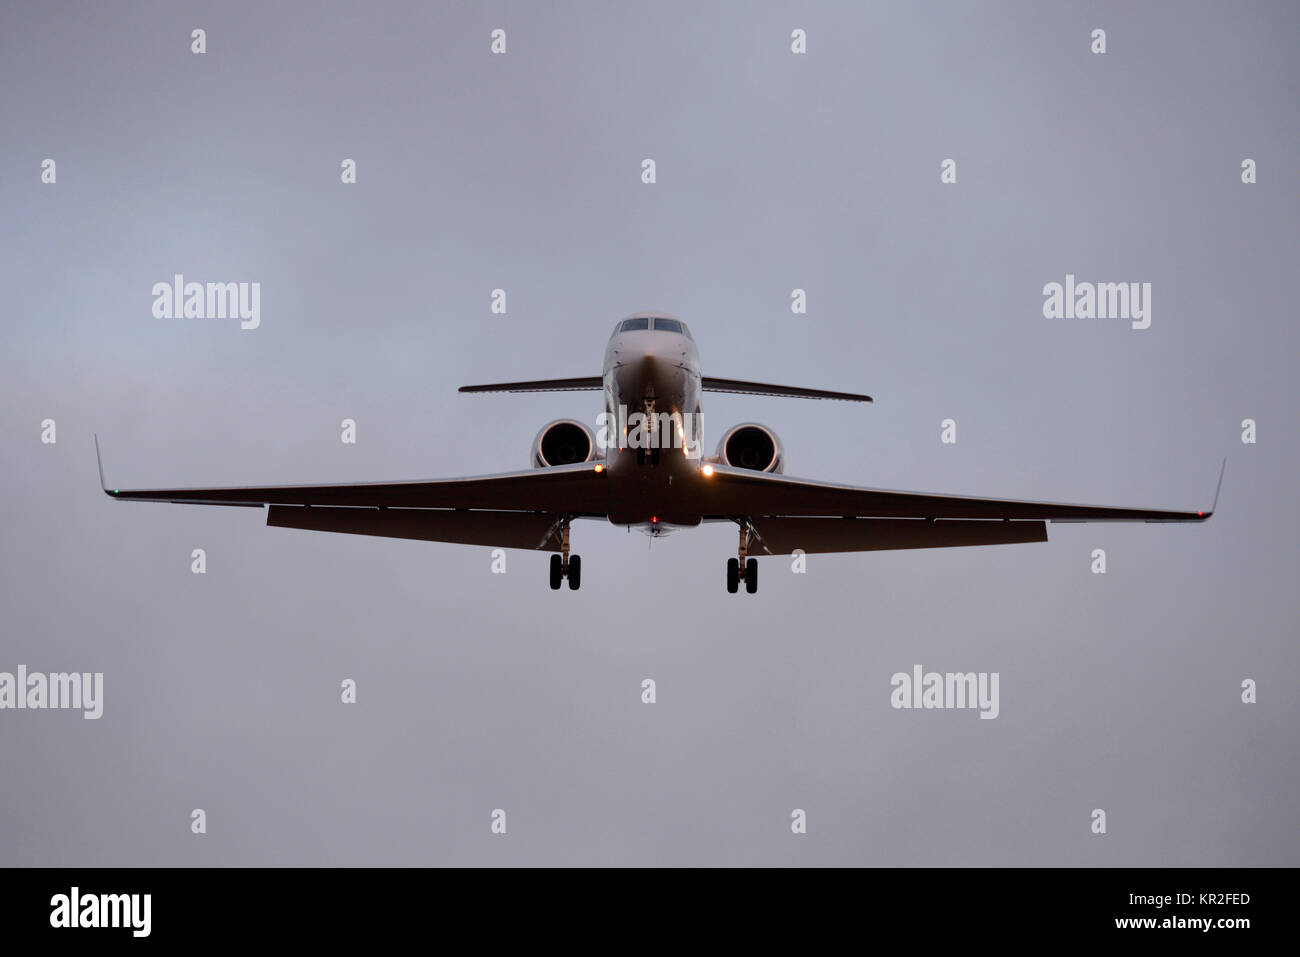 Gulfstream V GV jet plane landing at London Stansted Airport at dusk. Space for copy - Stock Image